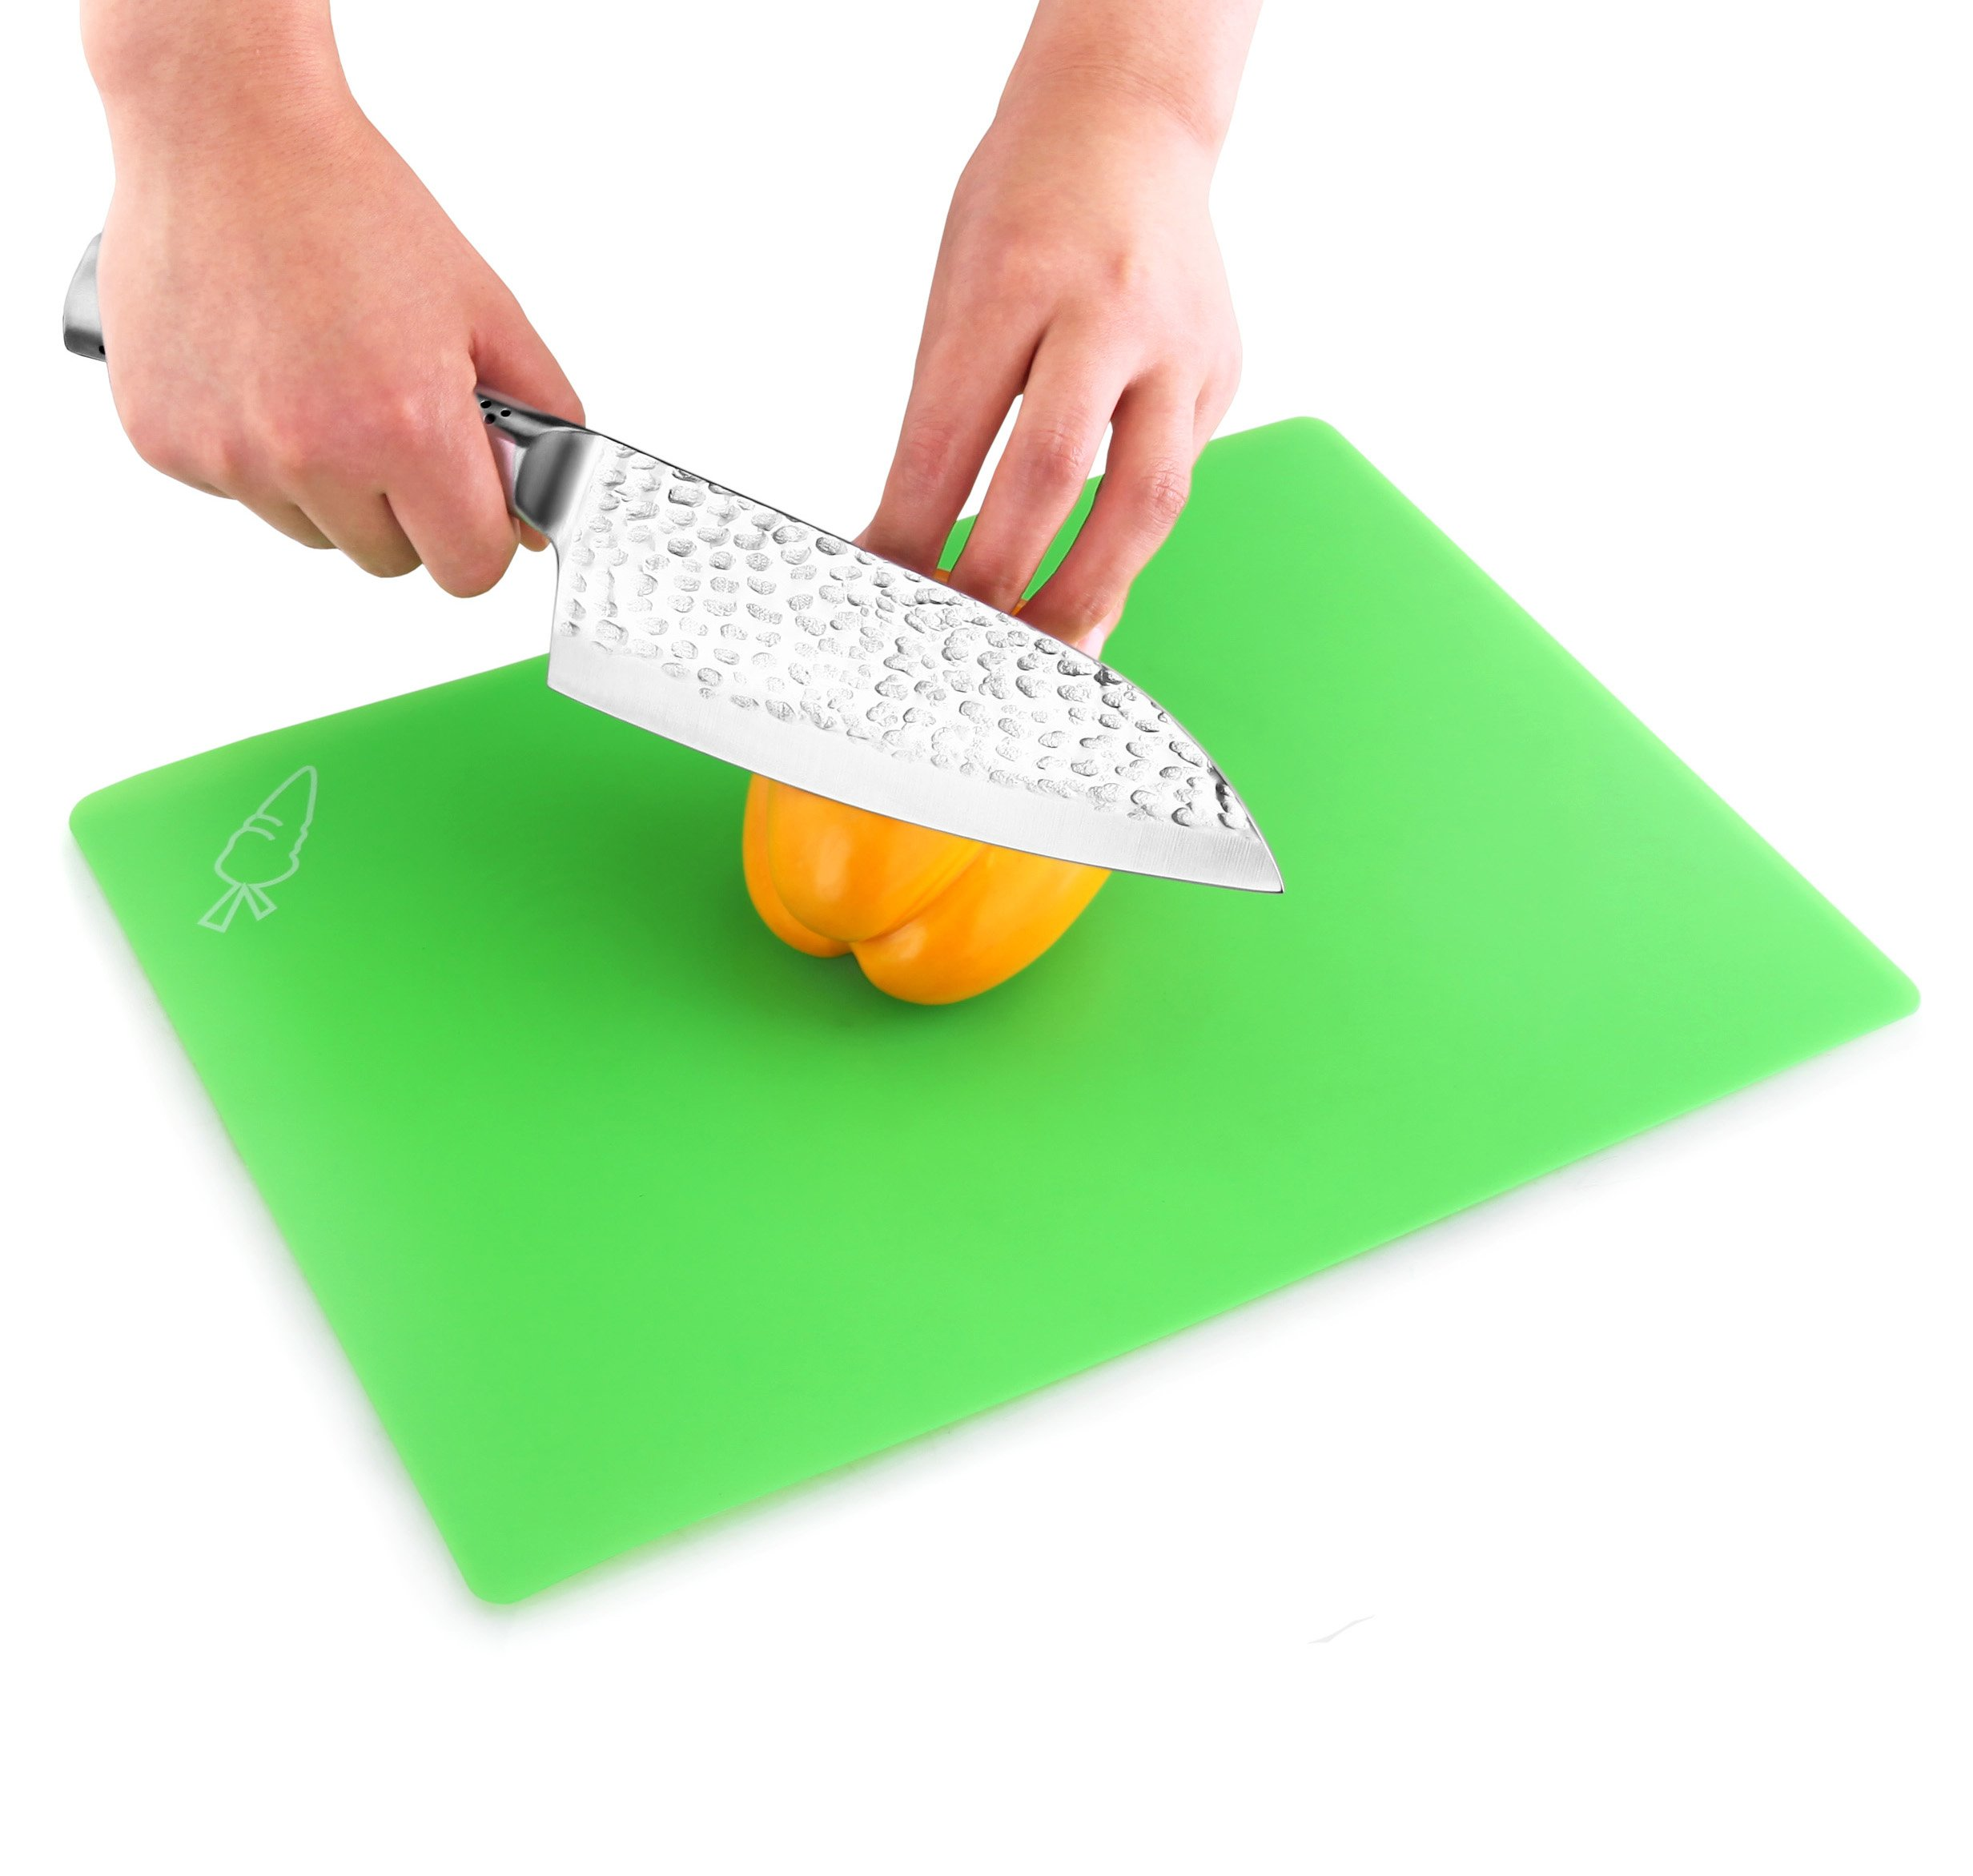 New Star Foodservice 28690 Flexible Cutting Board, 9.5-Inch by 14-Inch, Assorted Colors, Set of 3 by New Star Foodservice (Image #5)